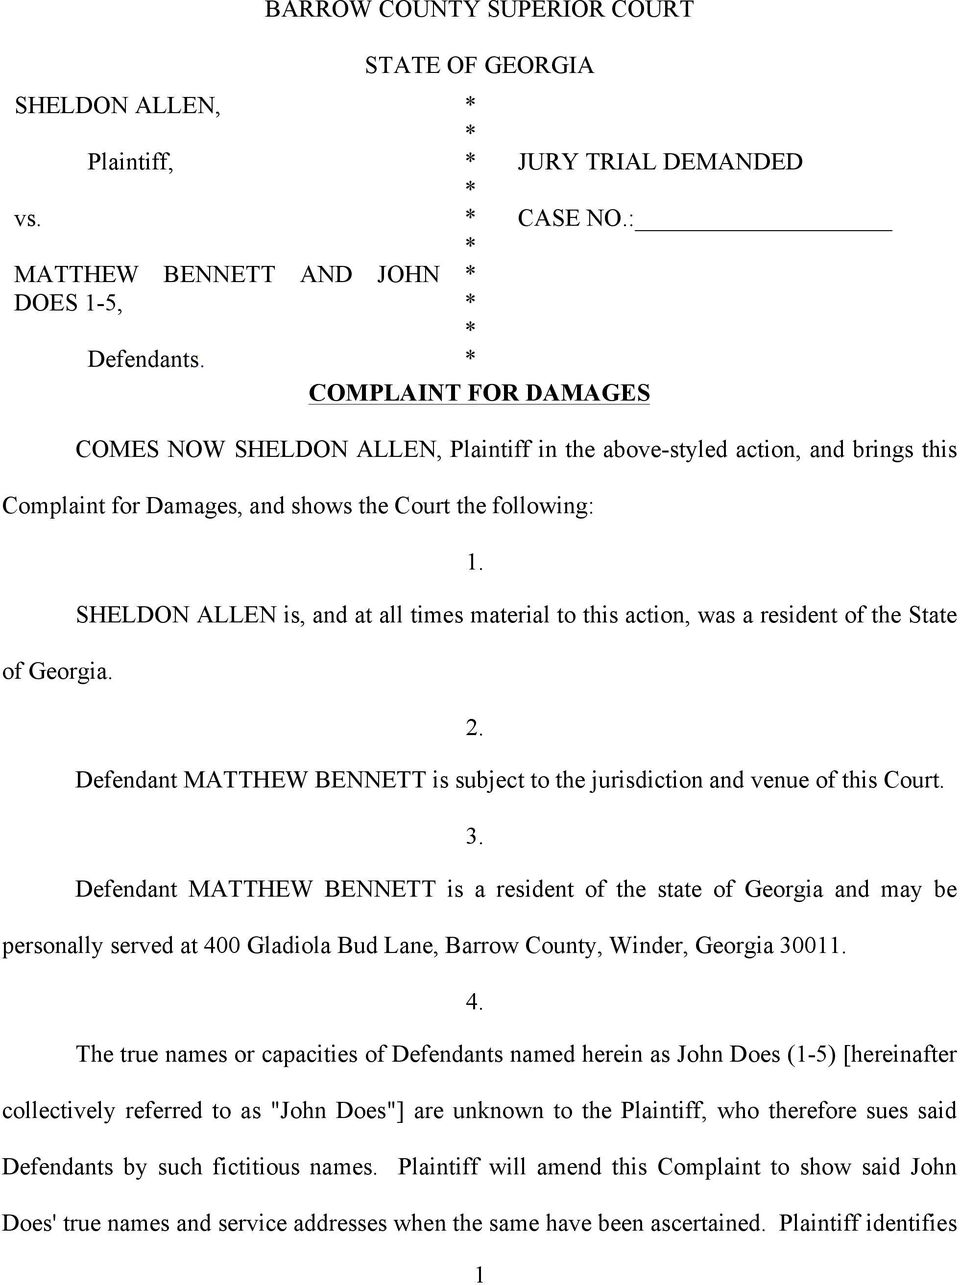 SHELDON ALLEN is, and at all times material to this action, was a resident of the State 2. Defendant MATTHEW BENNETT is subject to the jurisdiction and venue of this Court. 3.